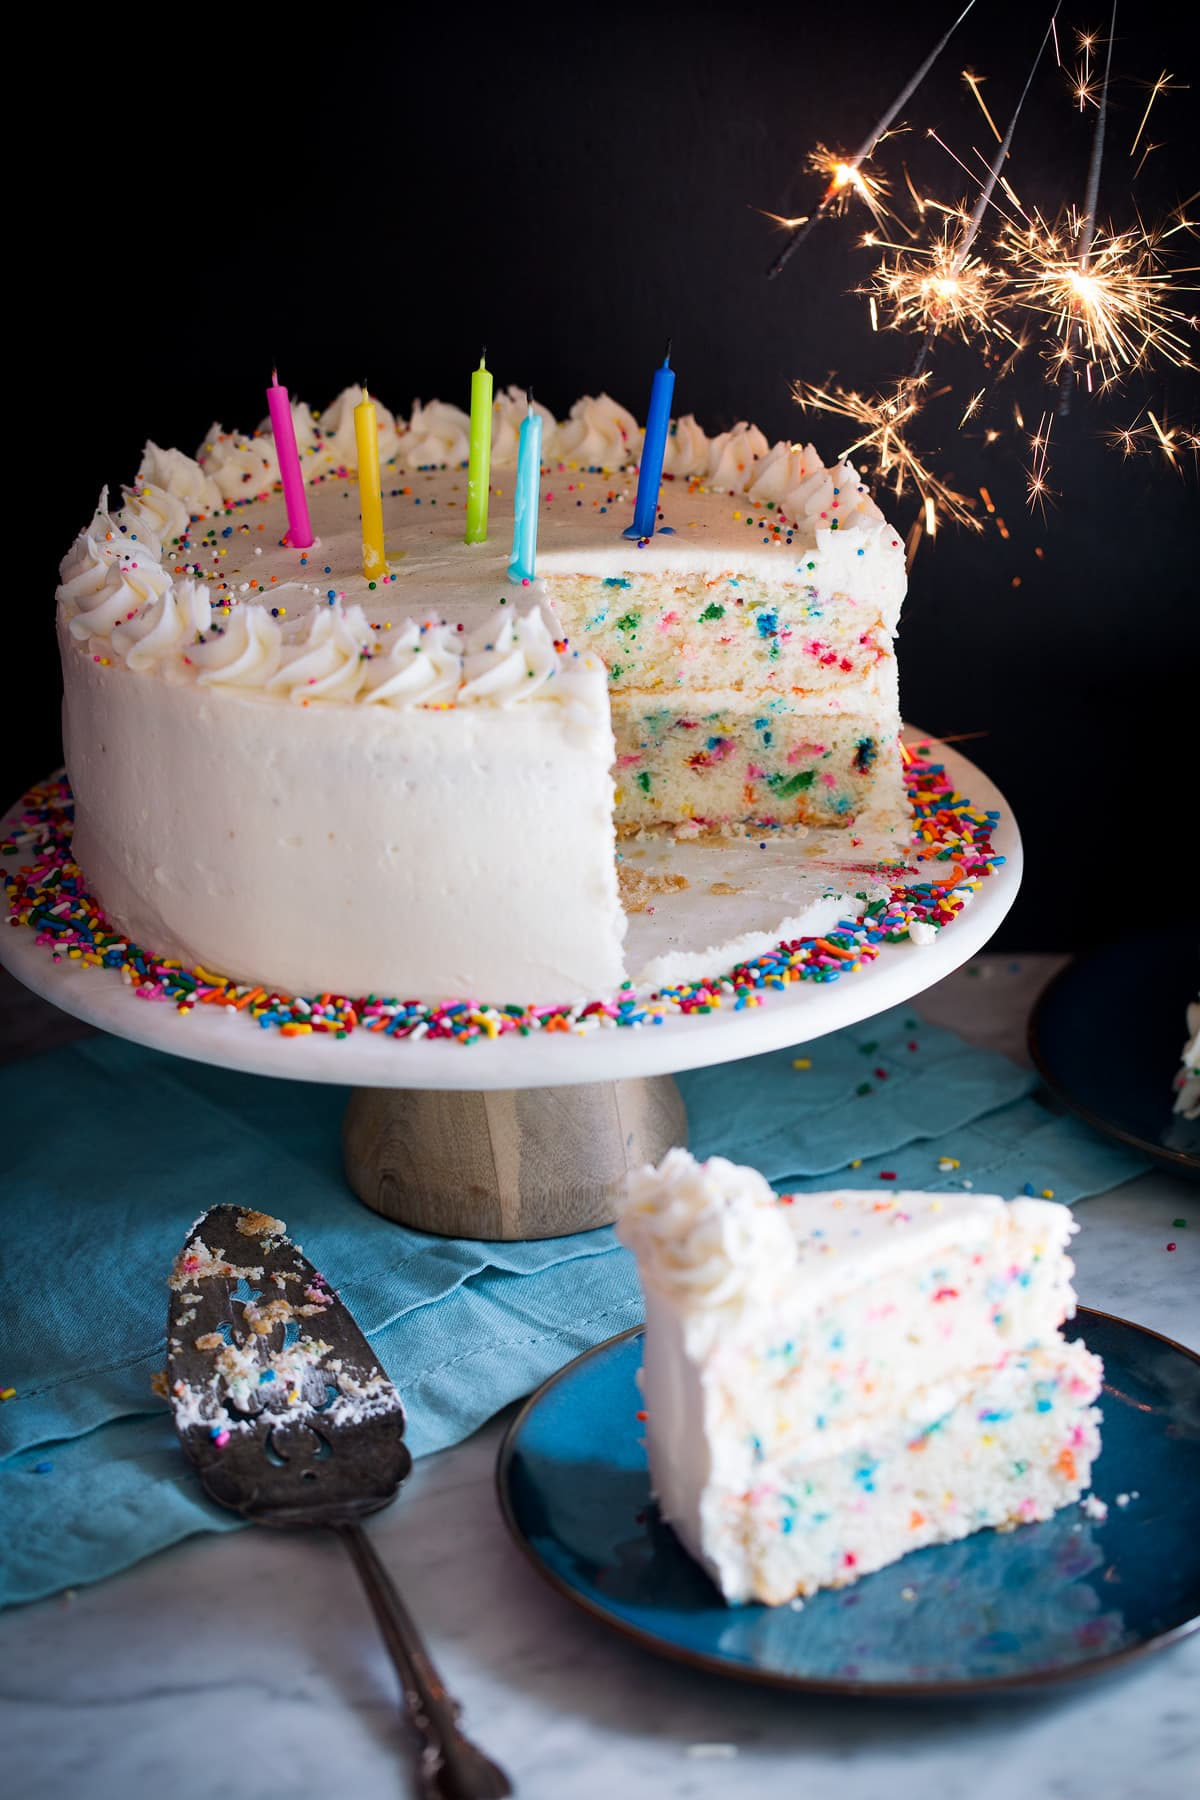 Birthday cake topped with candles and sparklers to the side.